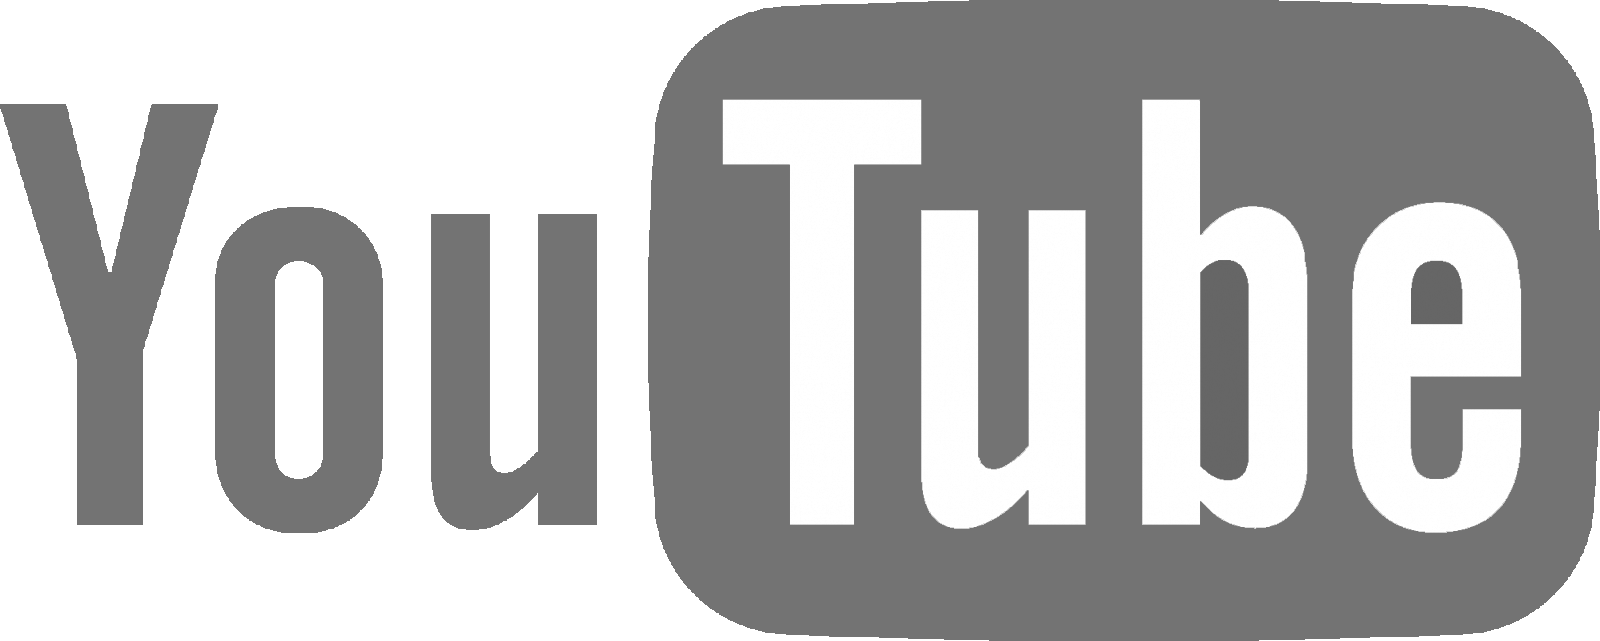 Youtube logo grey e2ba79.png?ixlib=rb 1.1